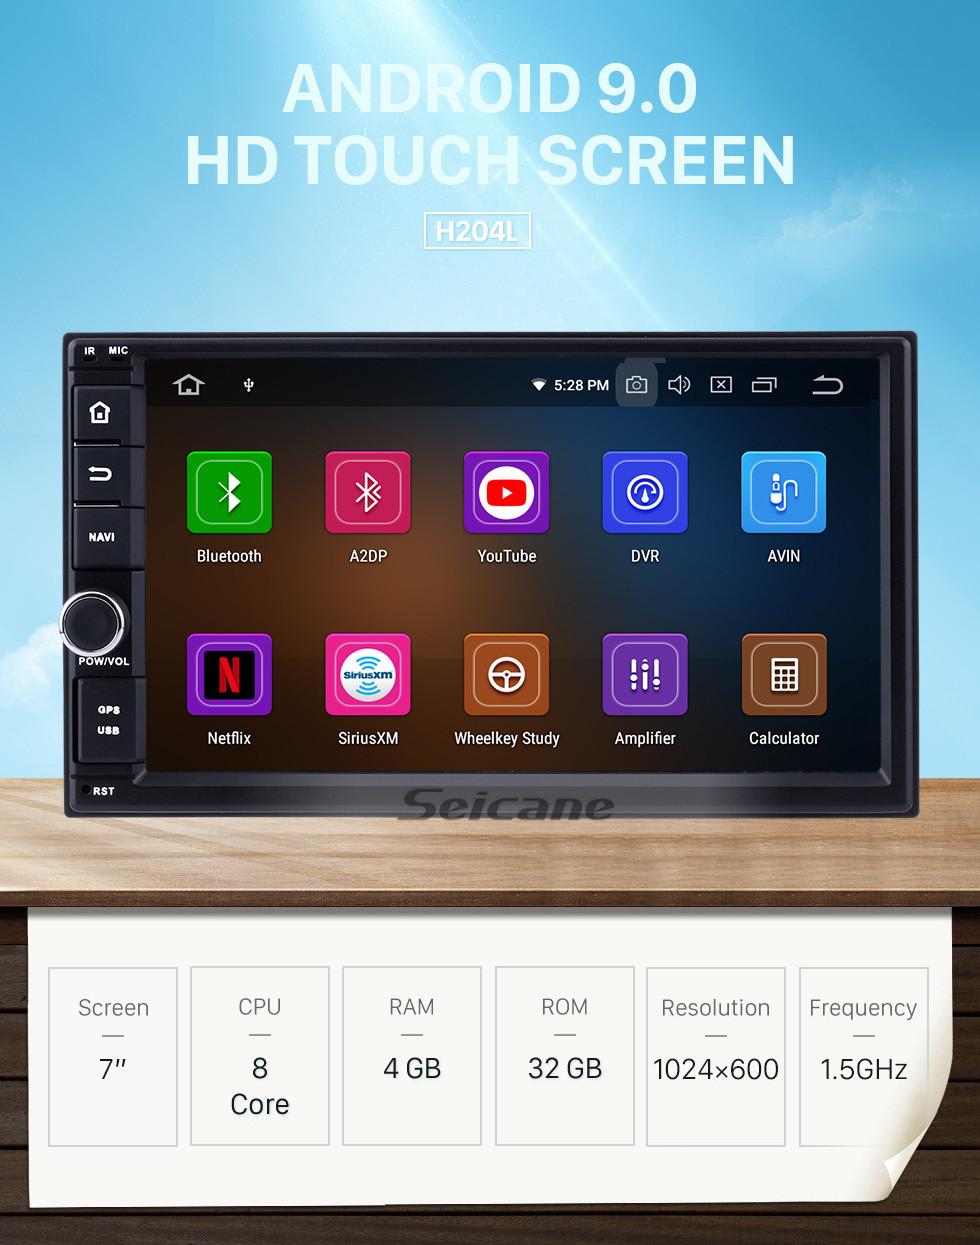 Seicane Android 9.0 2006-2011 Kia sedona Radio GPS Navigation Car Stereo DVD Player Head Unit Touch Screen Bluetooth Music WiFi 3G OBD2 Mirror Link Rearview Camera Video AUX DVR